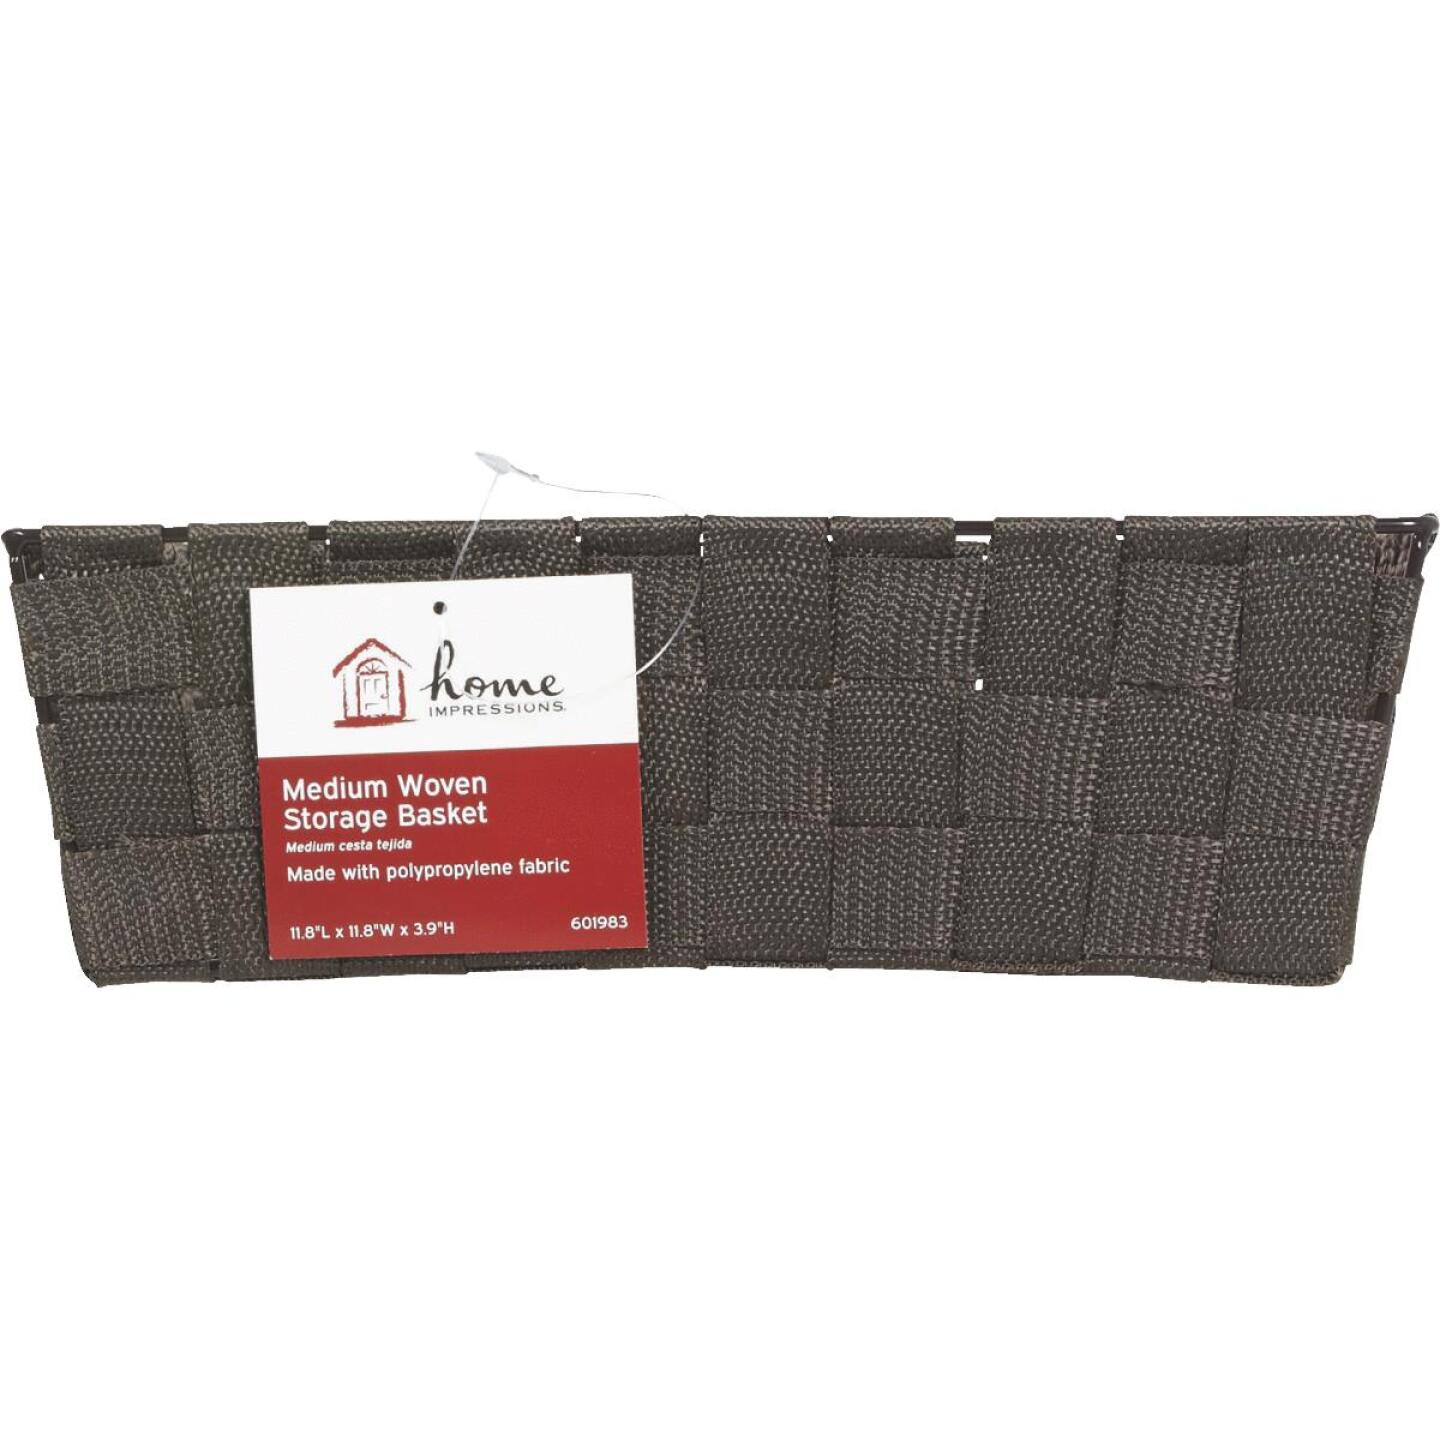 Home Impressions 11.75 In. x 3.75 In. H. Woven Storage Basket, Brown Image 2